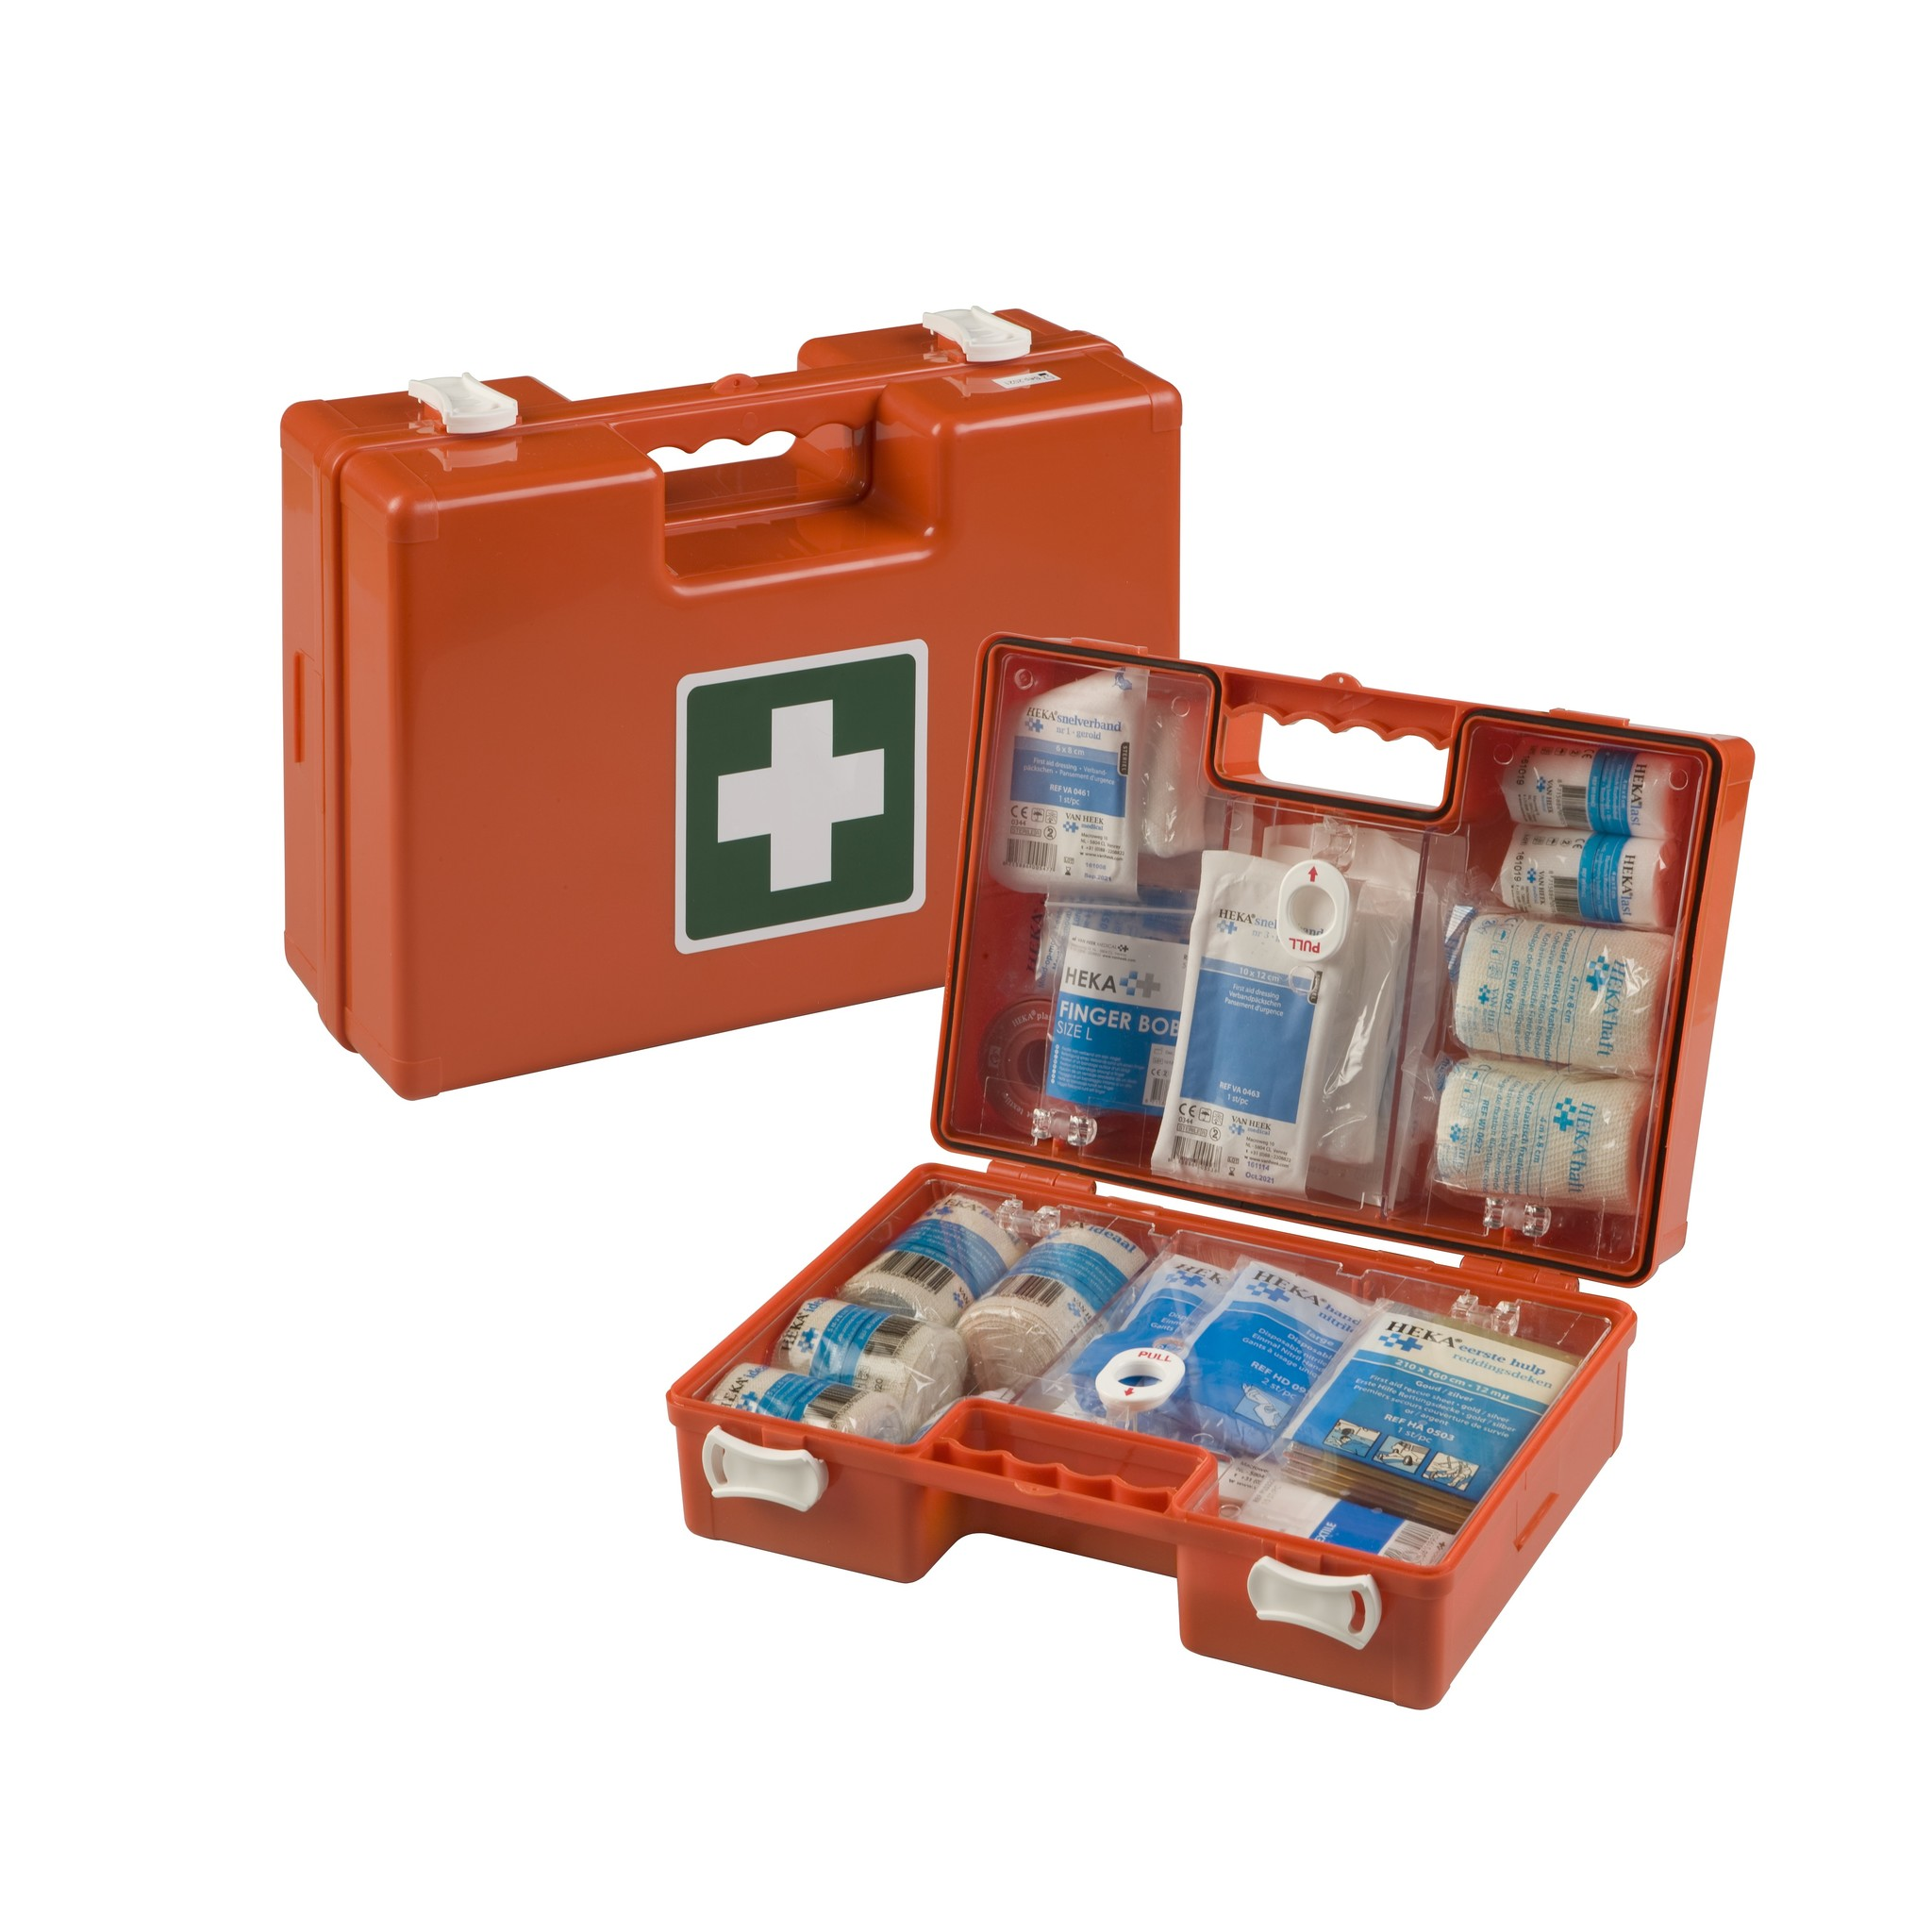 HEKA first aid case medimulti BHV 2016